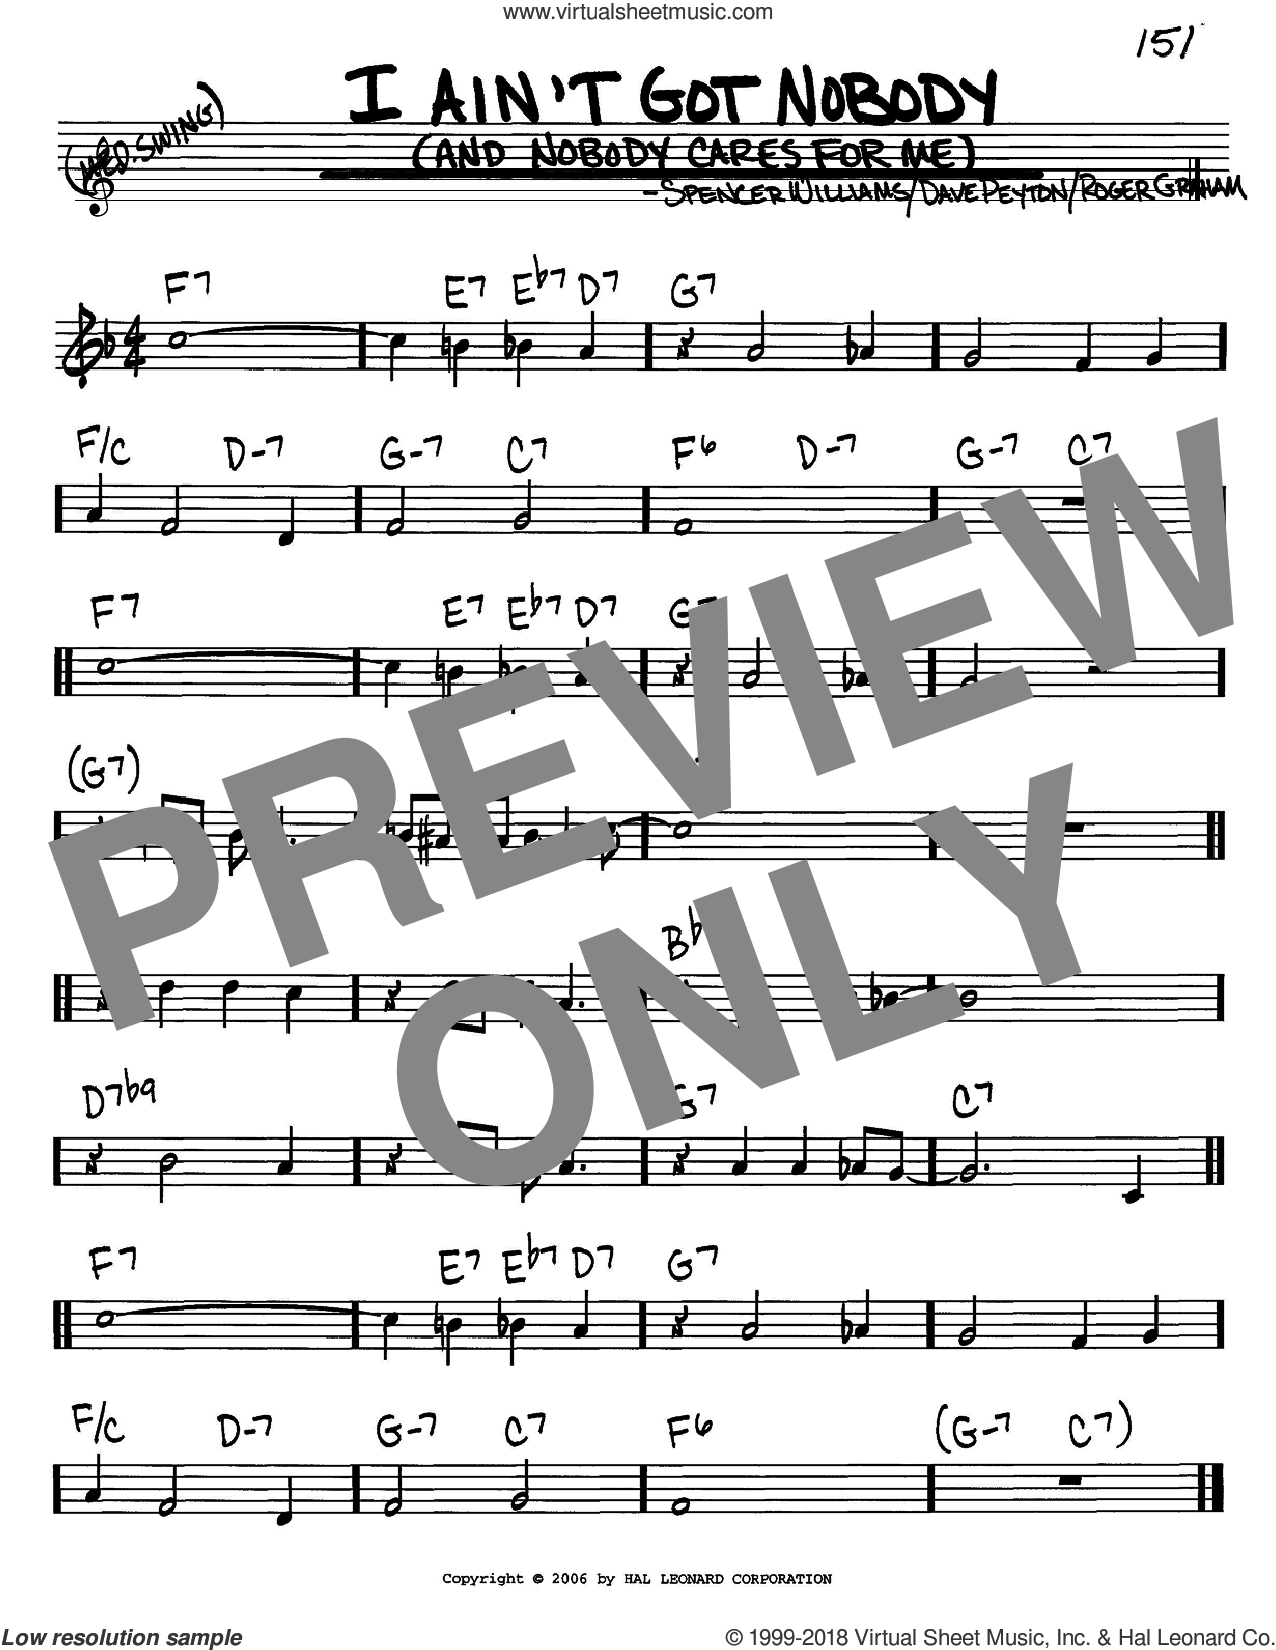 I Ain't Got Nobody (And Nobody Cares For Me) sheet music for voice and other instruments (C) by Spencer Williams